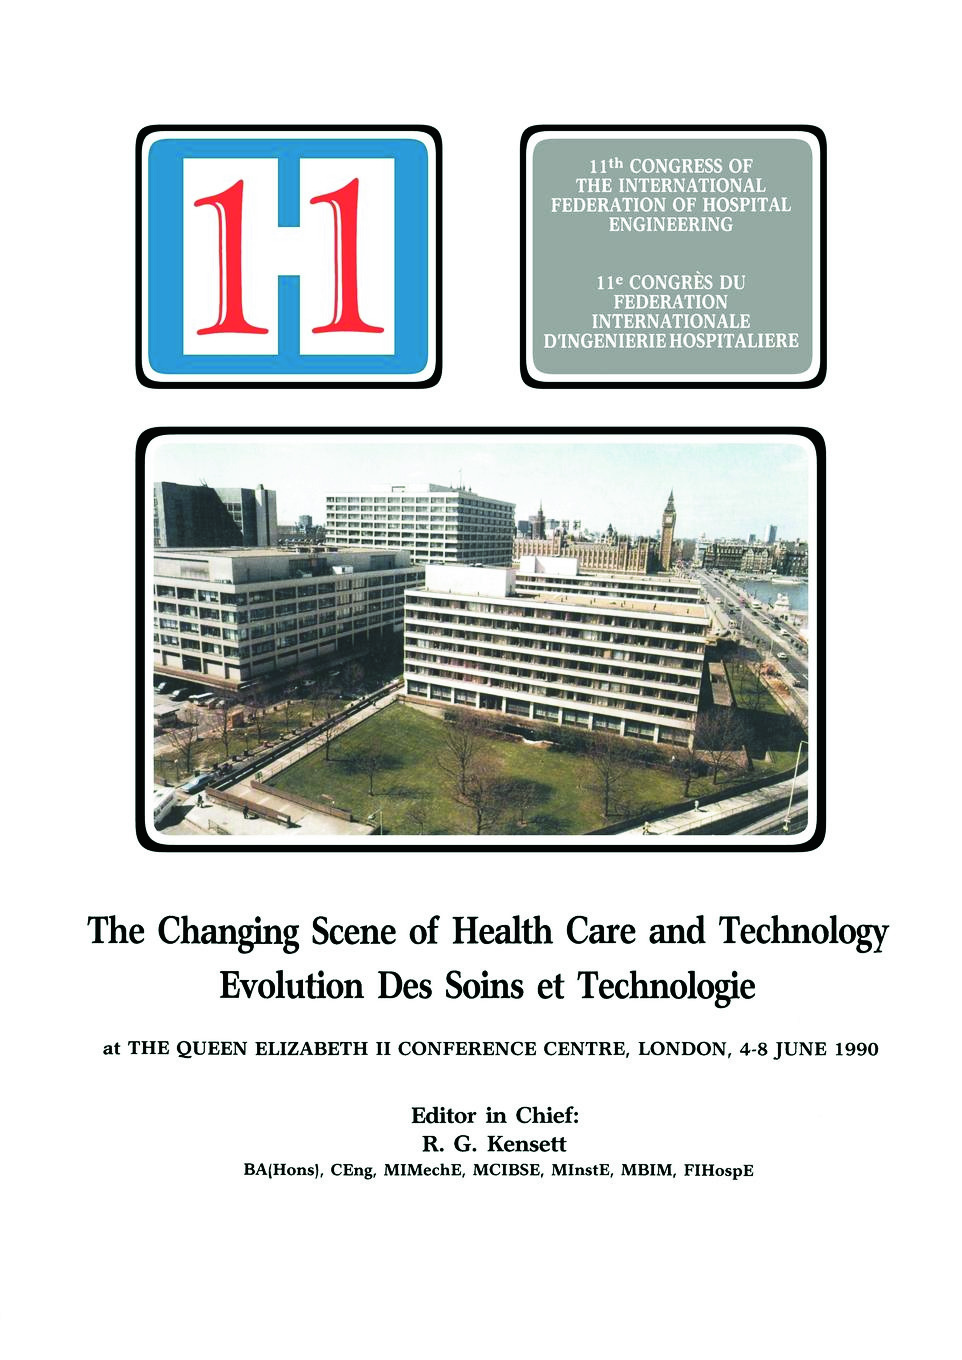 The Changing Scene of Health Care and Technology